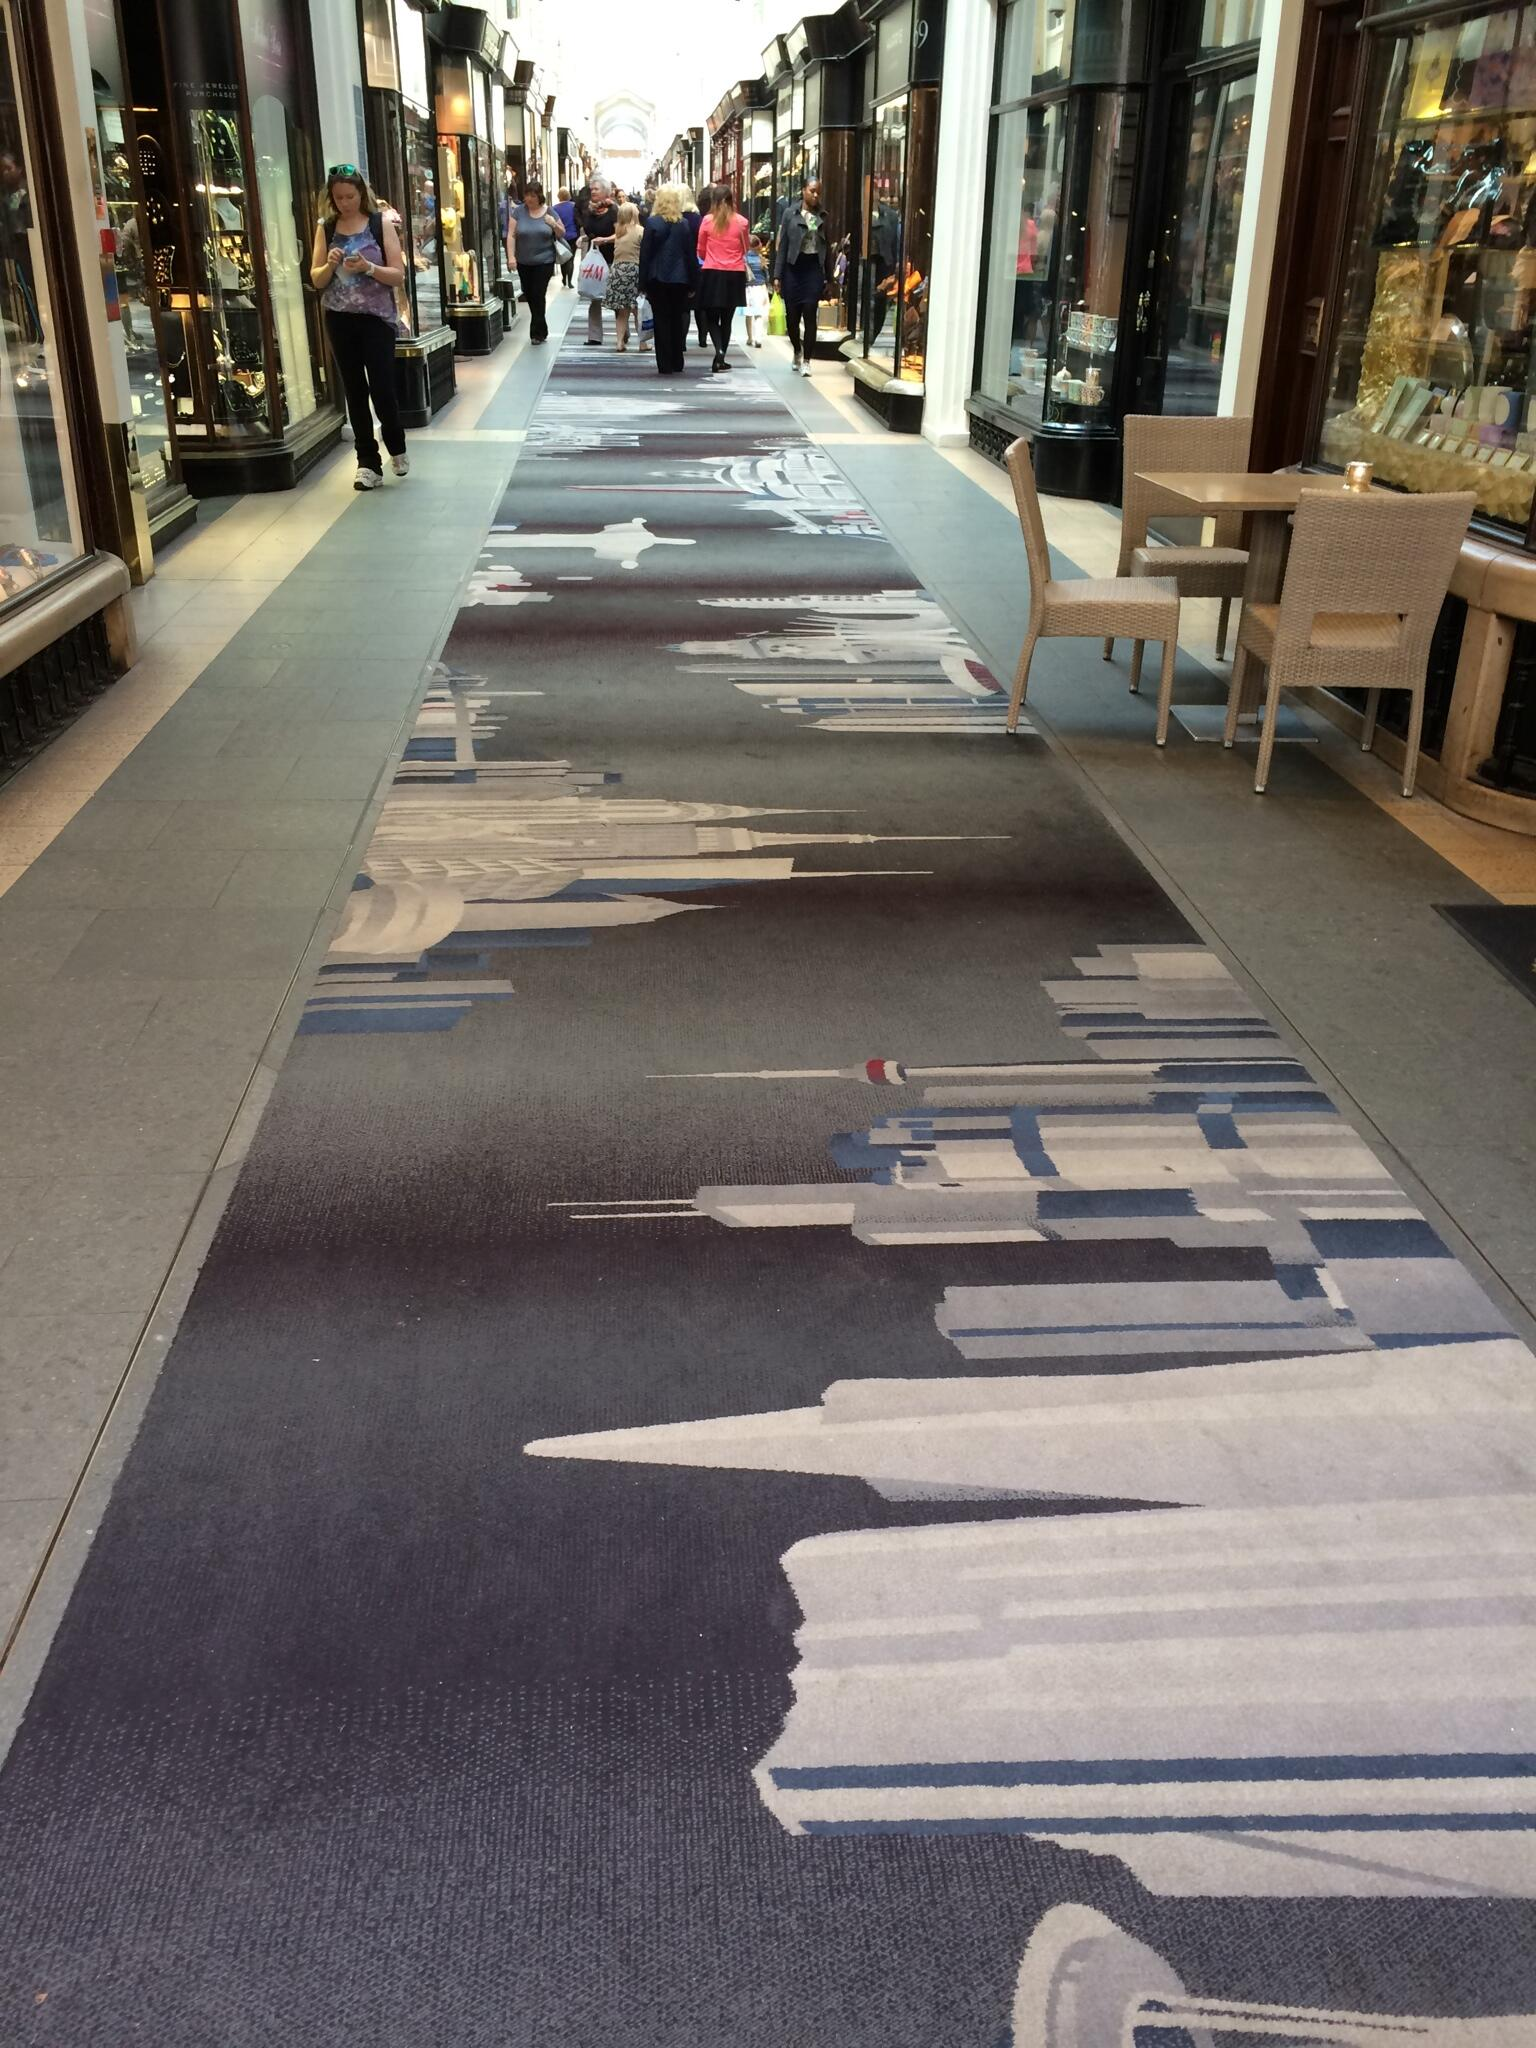 They've laid this carpet in Burlington Arcade. They might as well have laid a turd. I'm sorry, but what a desecration http://t.co/G0Ff00IFrV